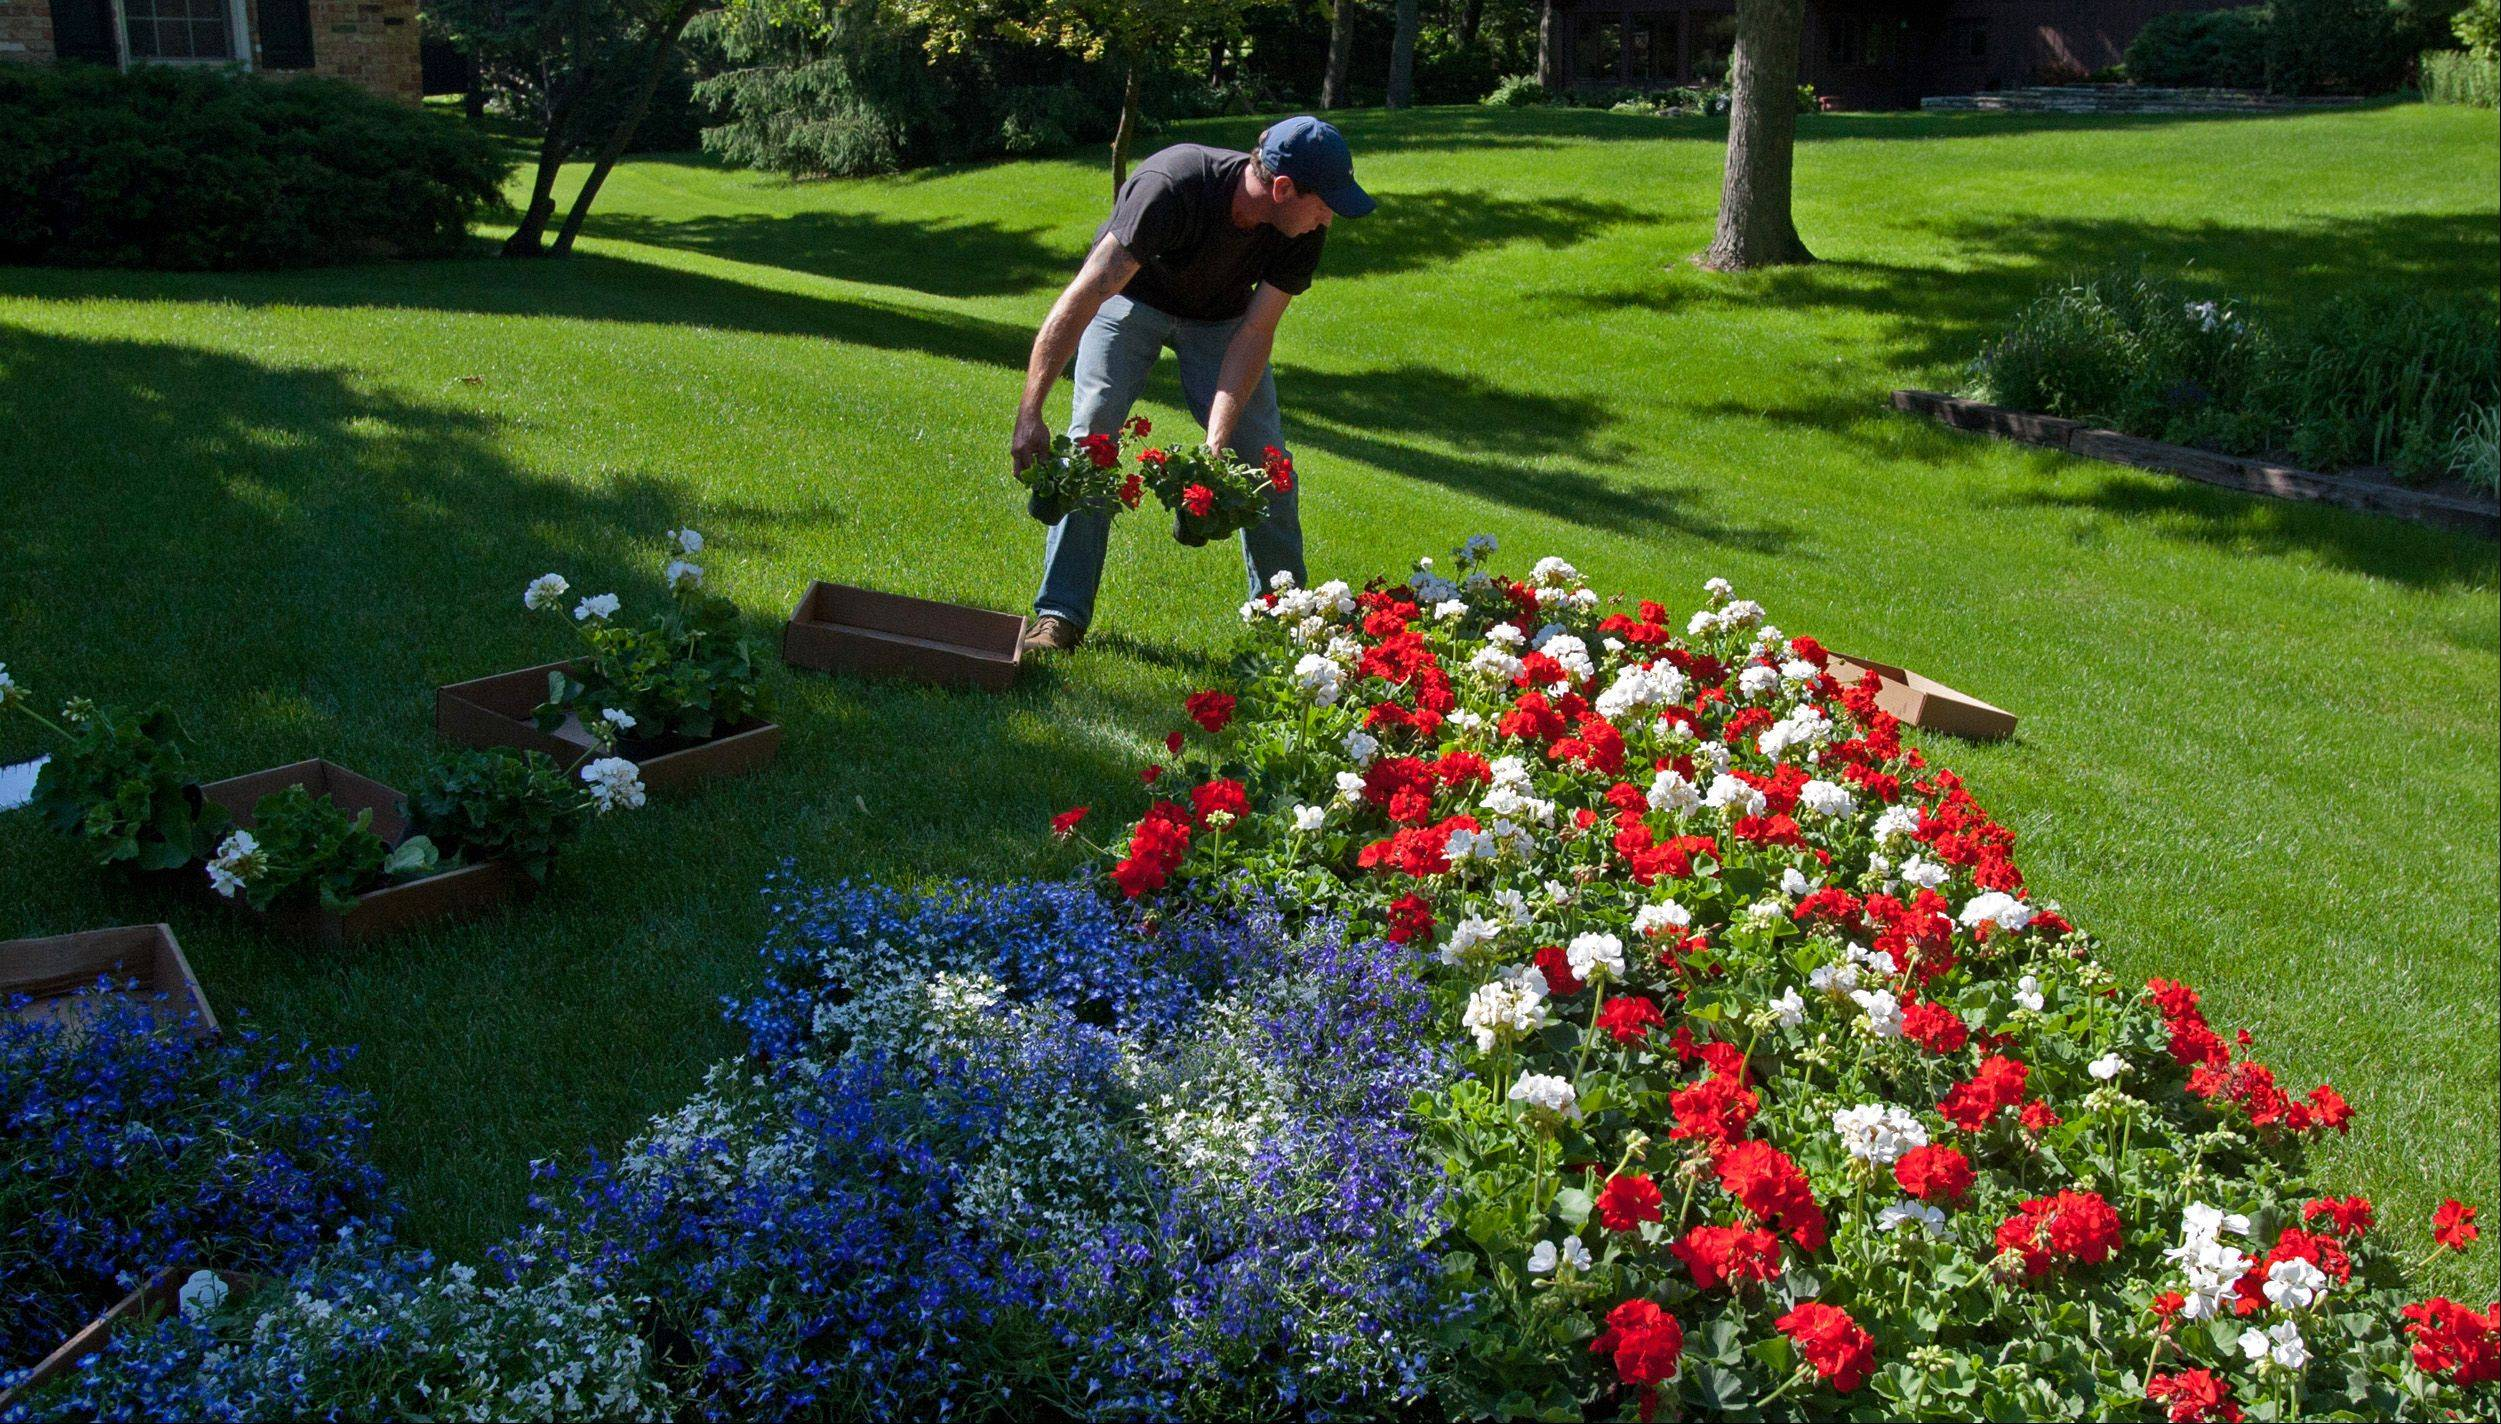 Glen Ellyn resident Chris Clayton arranges a flag of flowers in honor of fallen FBI Special Agent Christopher Lorek, who died in a May 20 counterterrorism training exercise. Clayton is a neighbor of Lorek's parents, Bill and Janet Lorek, as well as a good friend of his surviving brother, Jason.